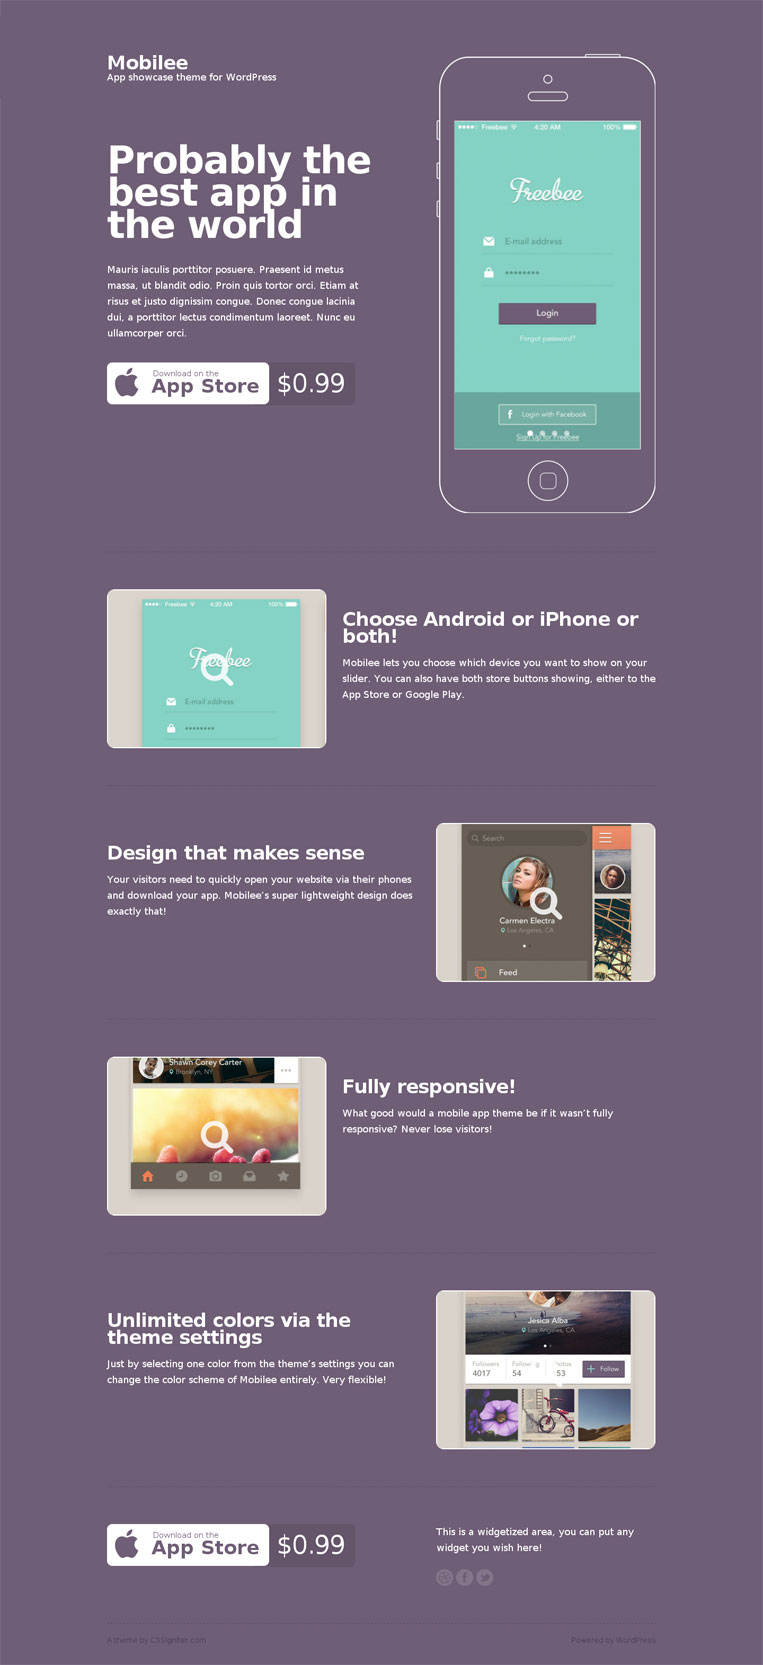 mobilee wordpress theme for mobile app showcase